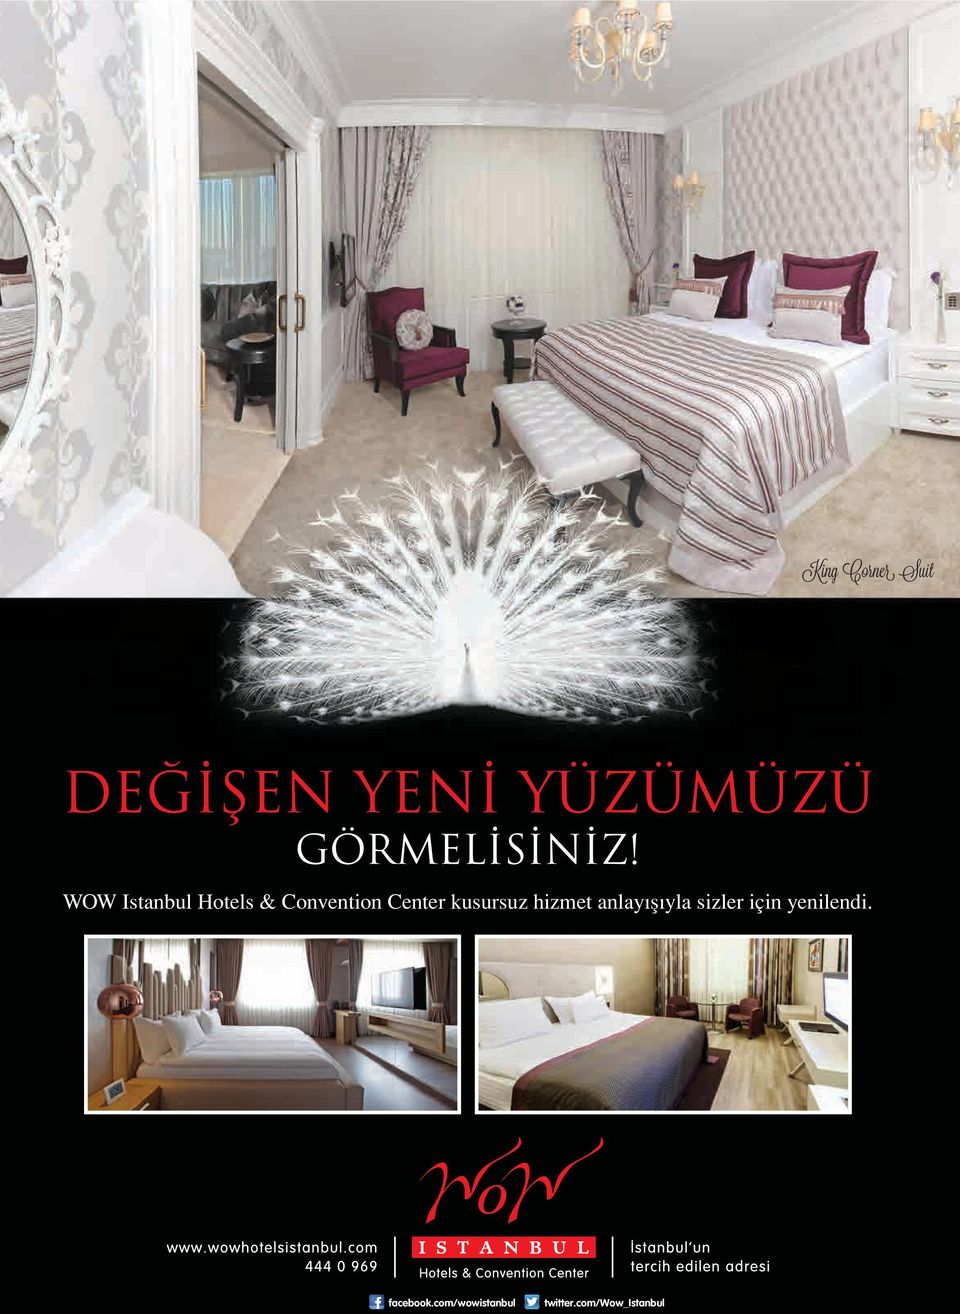 WOW Istanbul Hotels & Convention Center kusursuz